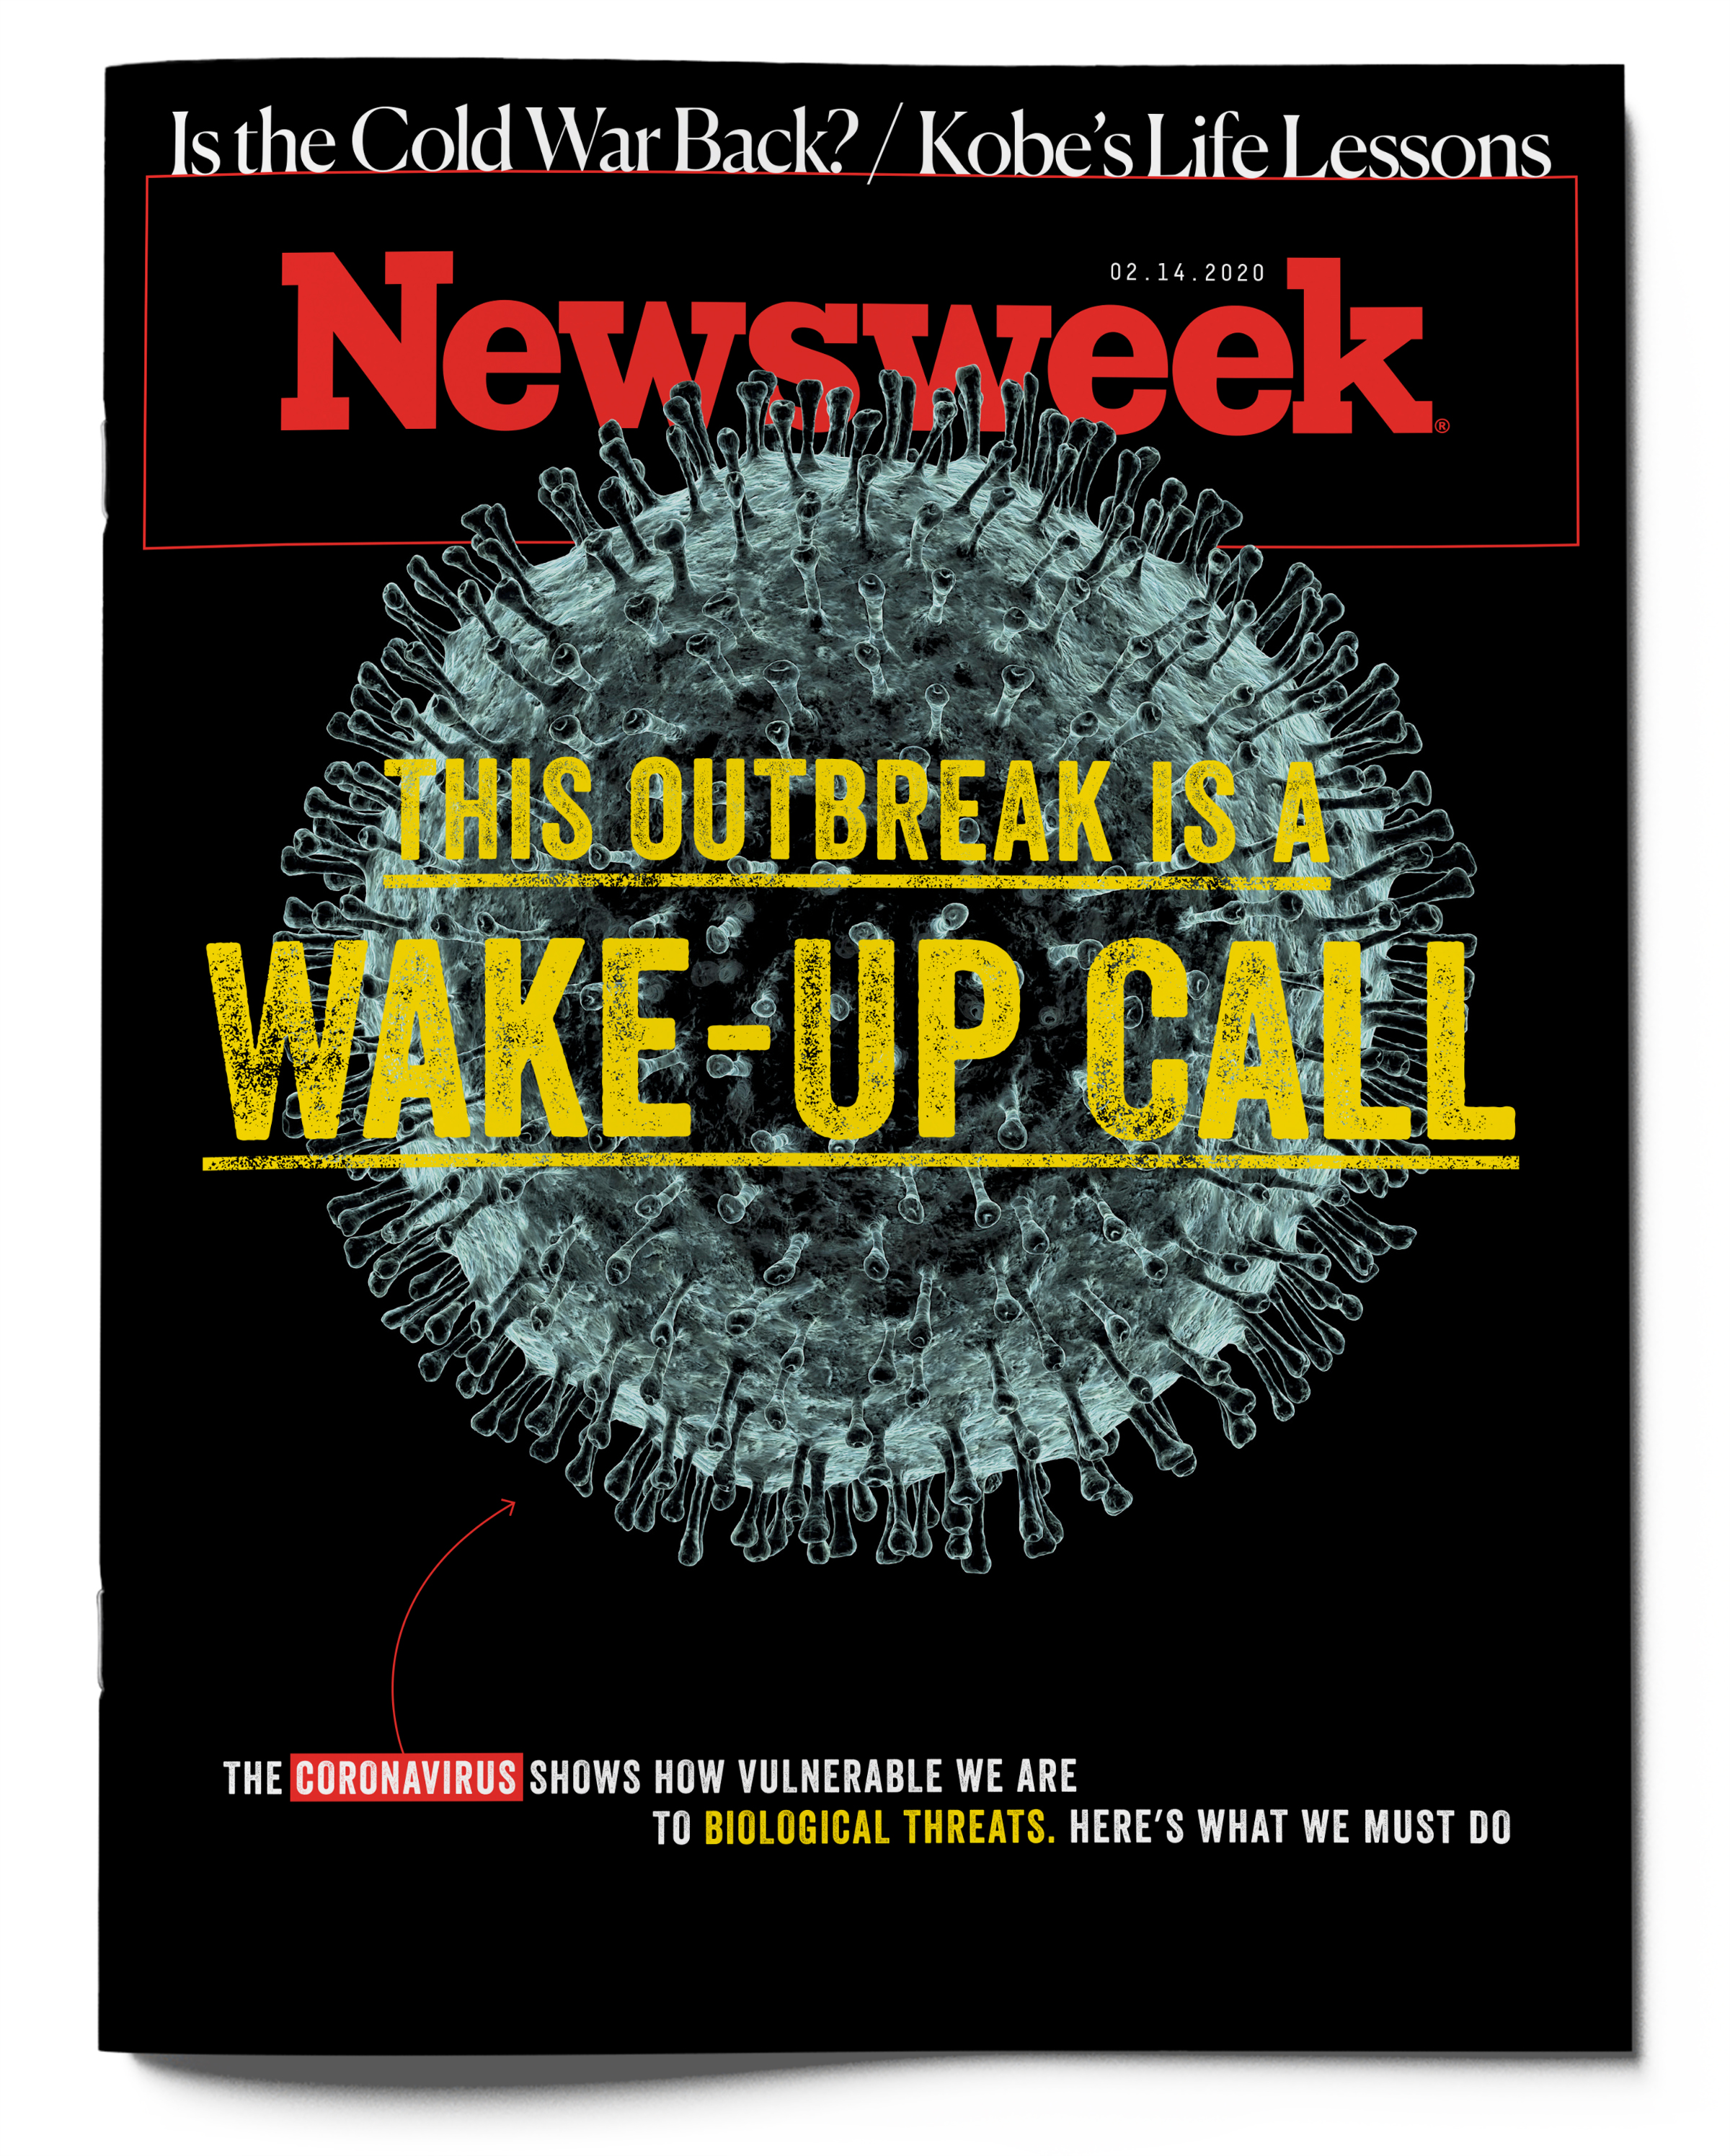 The Coronavirus Outbreak Is A Wake-up Call Showing How Unprepared We Are To Deal With Biological Threats